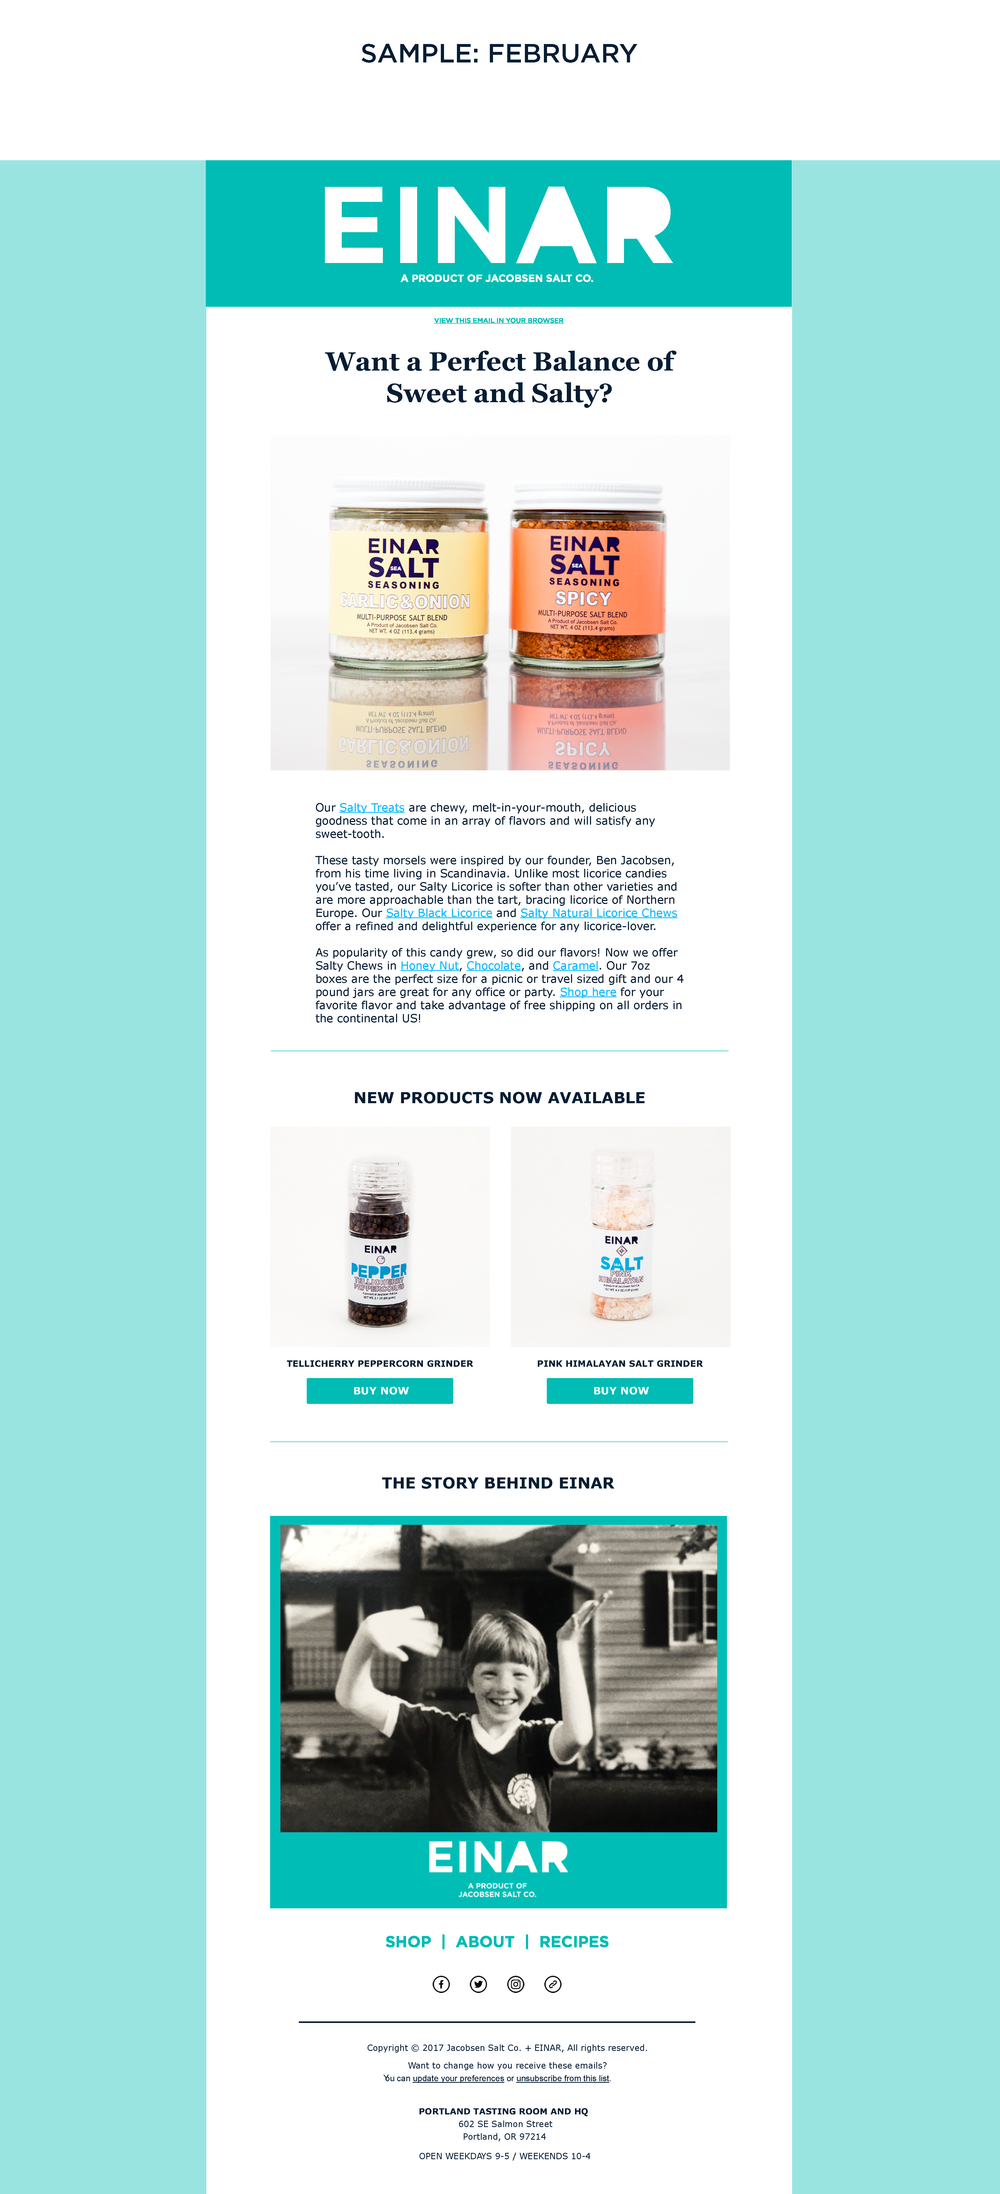 Einar Email newsletter templates_Page_2.png